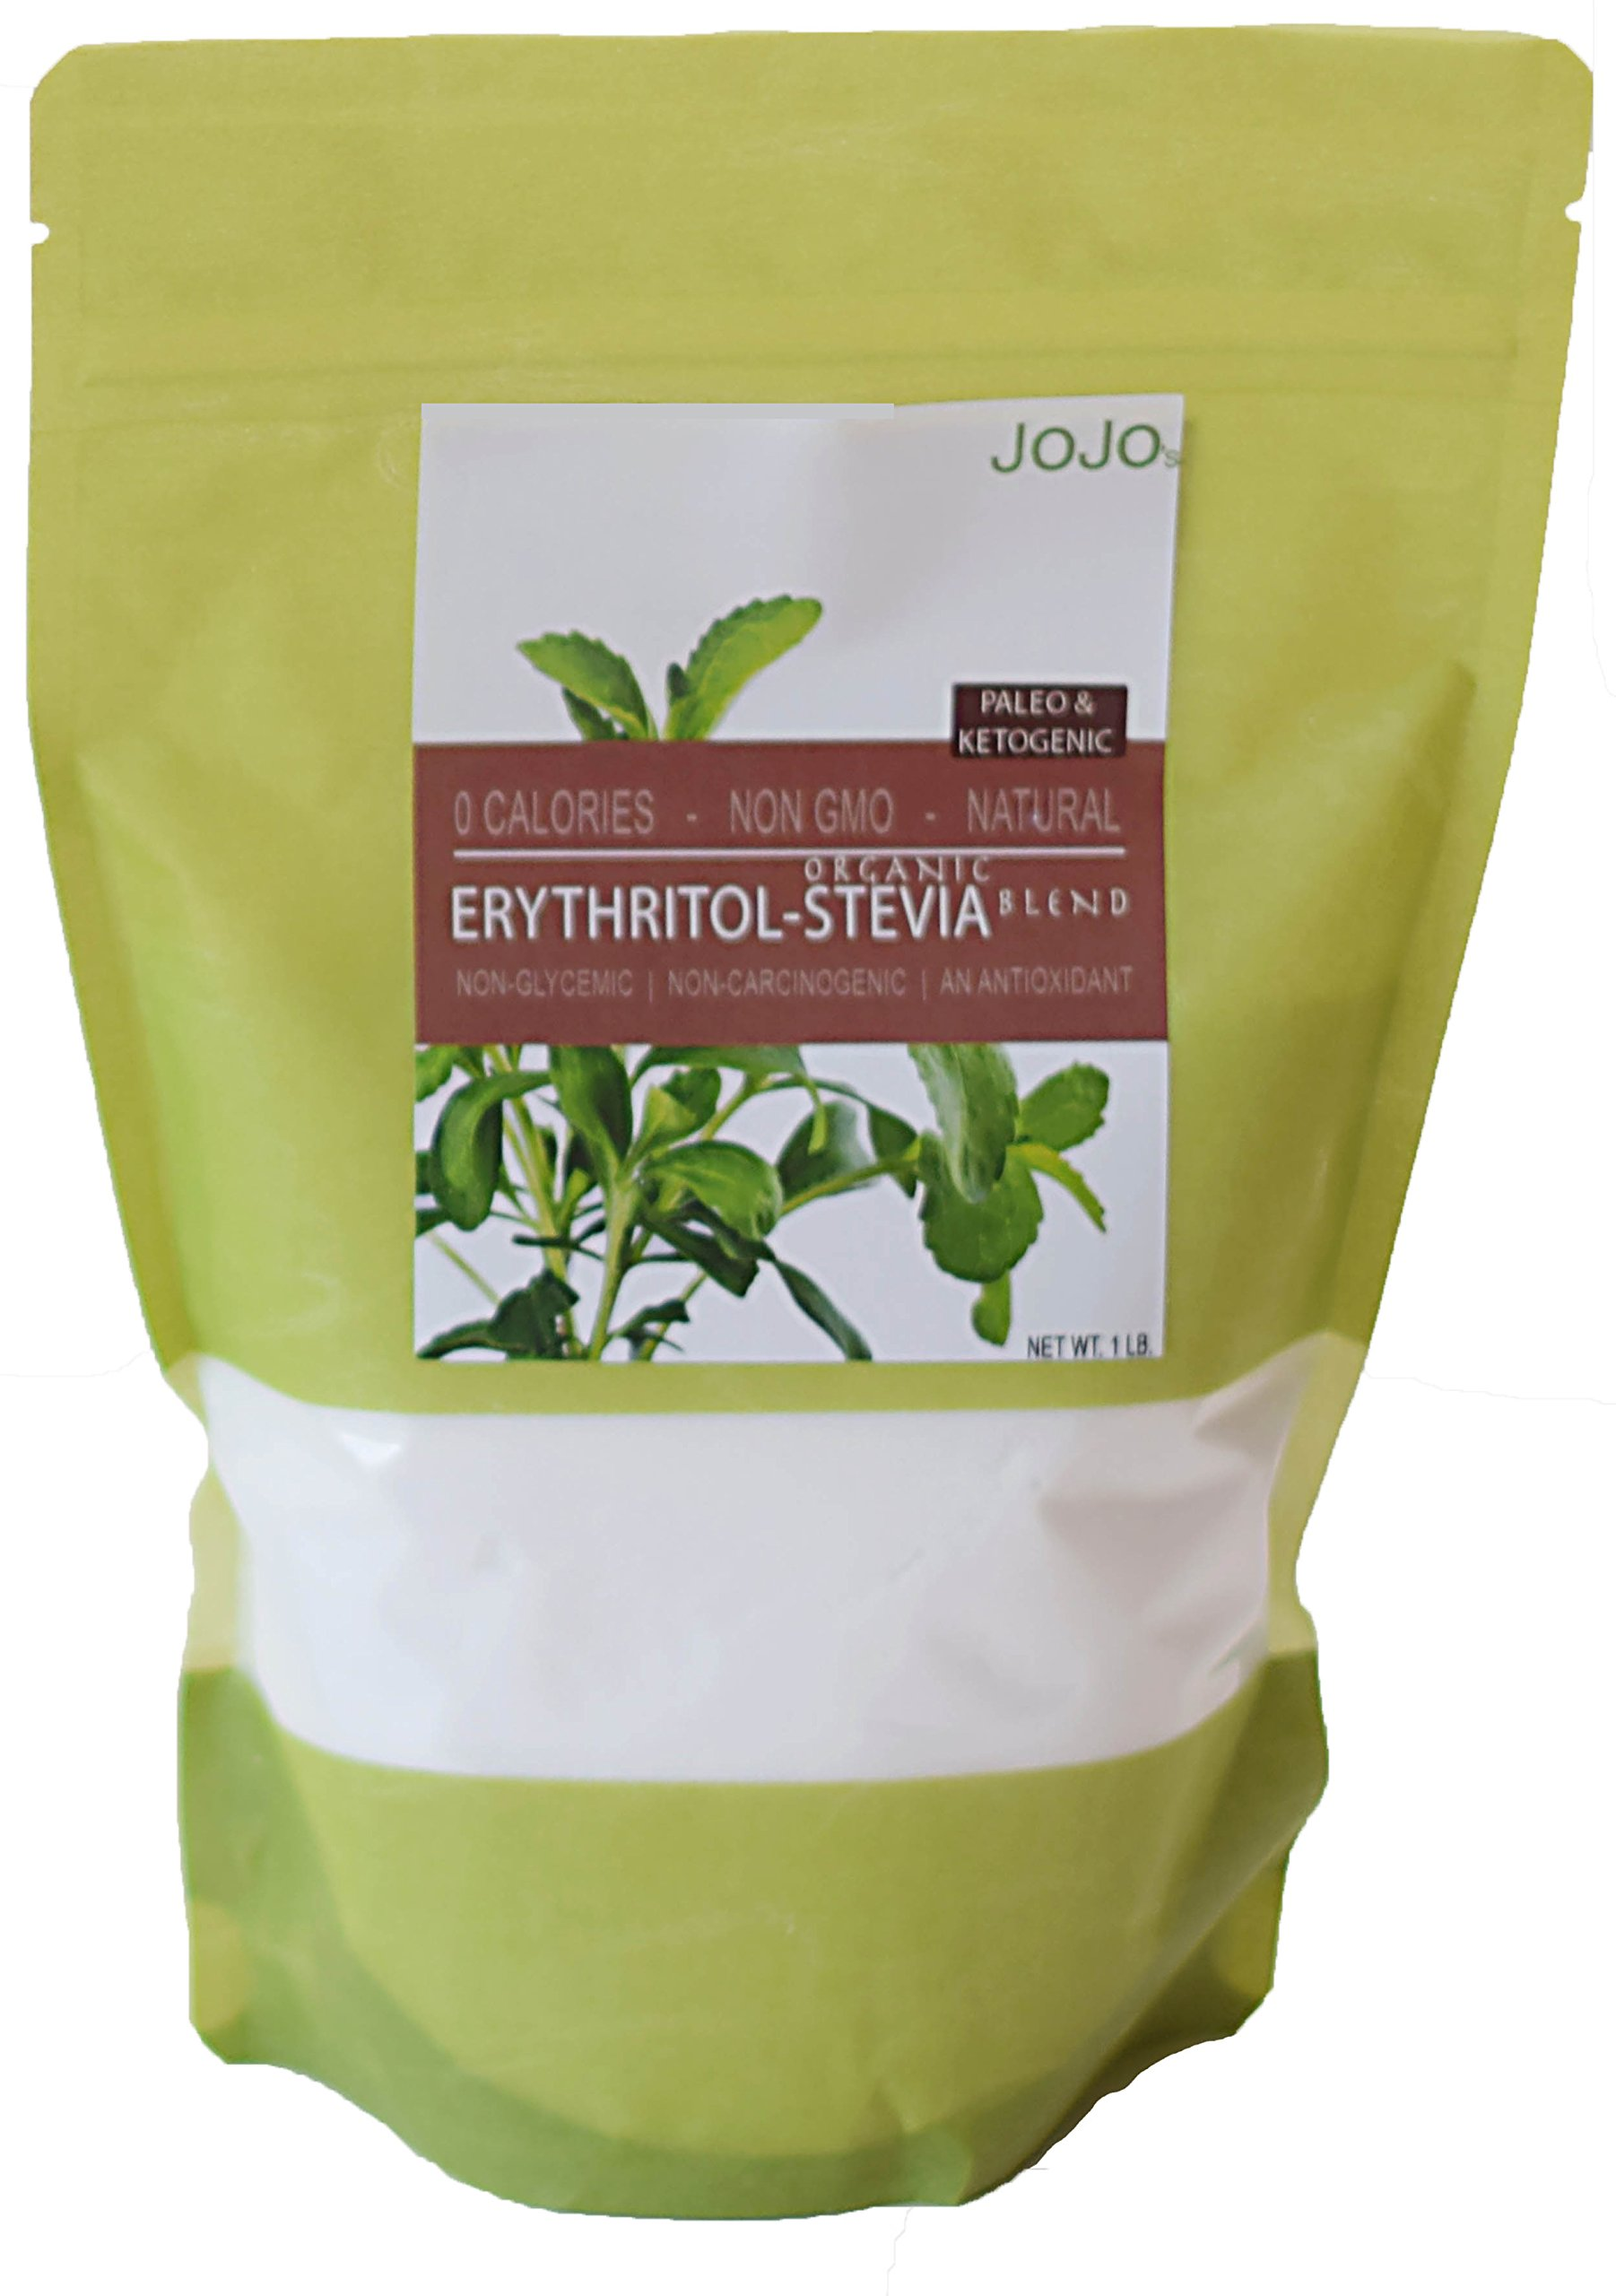 Erythritol Stevia Blend 1lb All Natural Organic Stevia Paleo Ketogenic Sweetener, 226 servings. Perfect for baking sugar free recipes + 5 Sugar Free Recipes Included With Your Order by JOJO's Chocolate